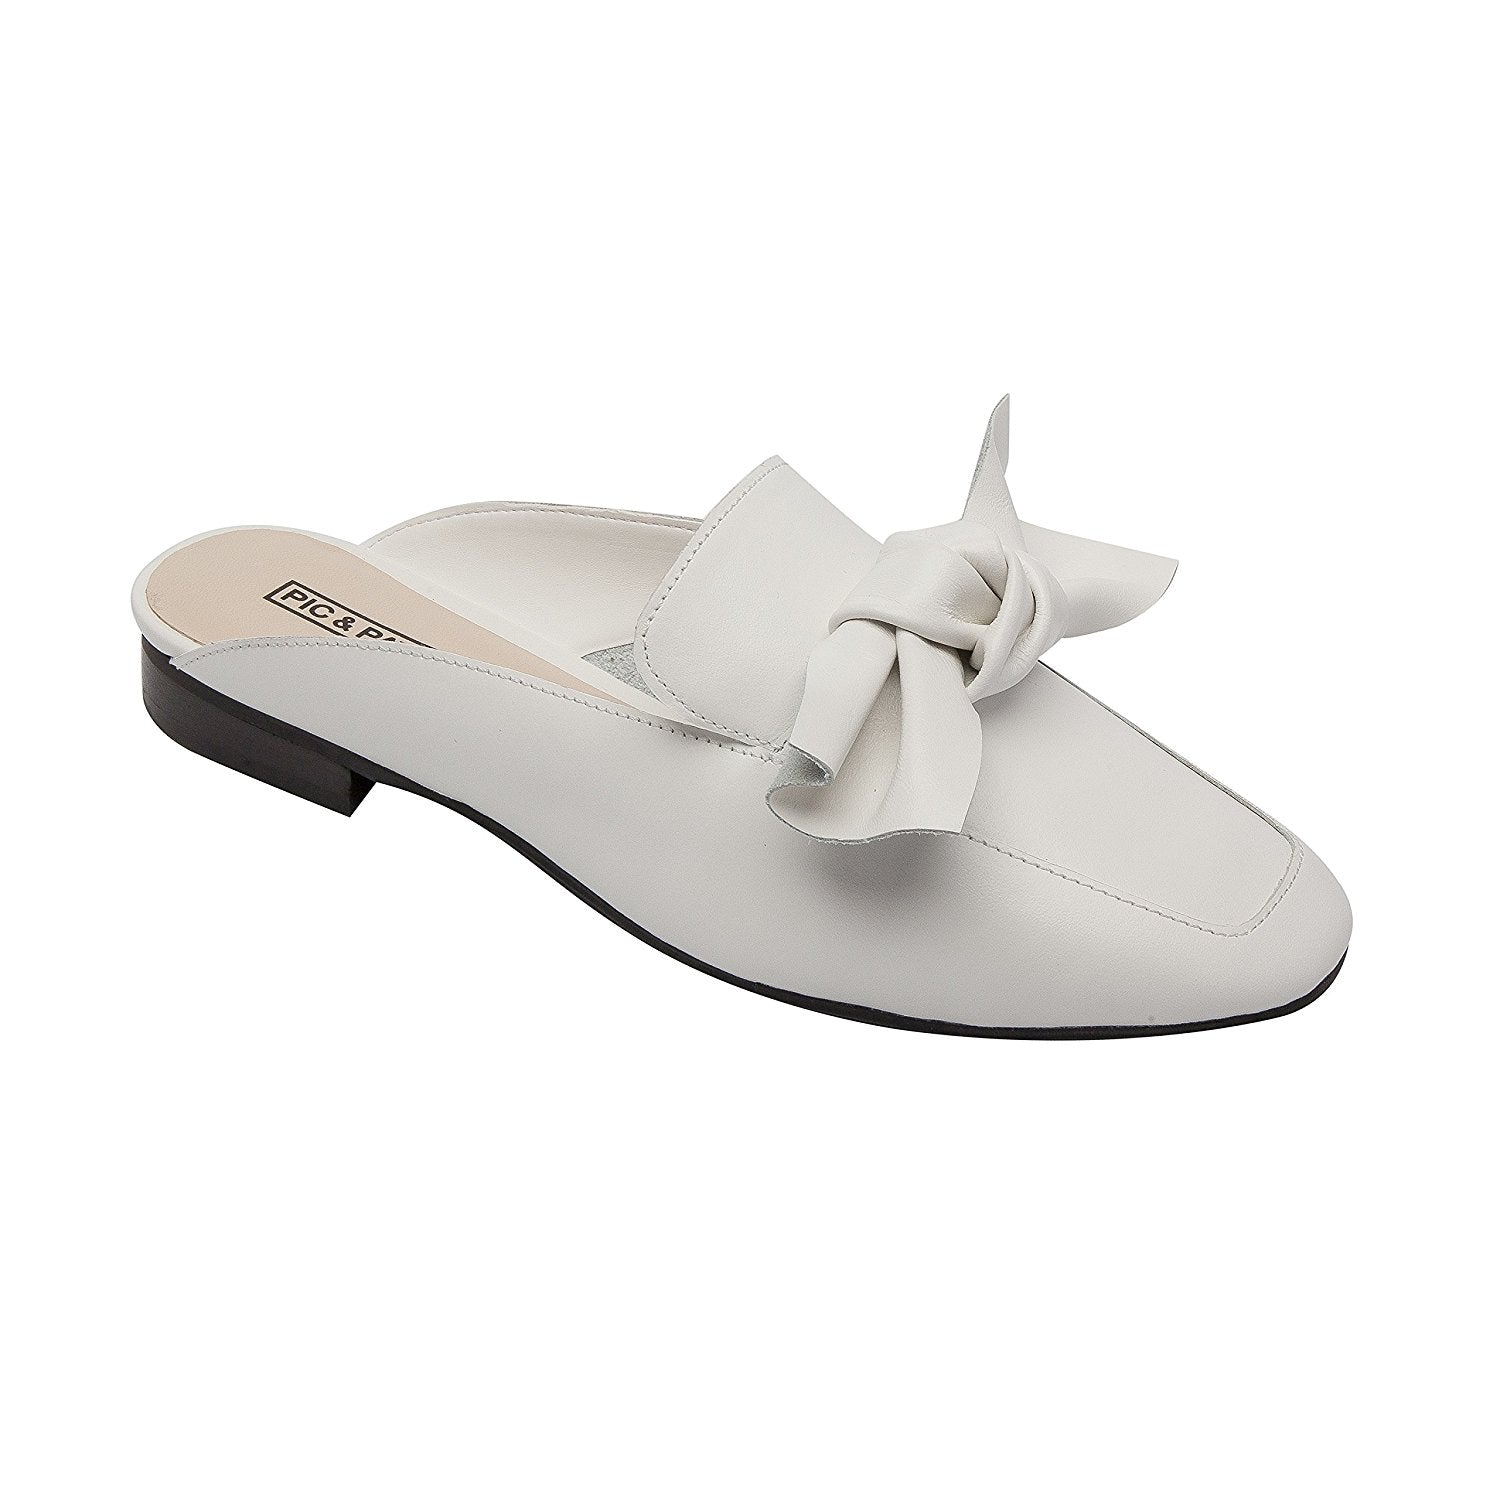 PIC/PAY Dakota | Women's Bow Adorned Slip-On Comfortable Loafer Mule Leather Suede (New Spring)